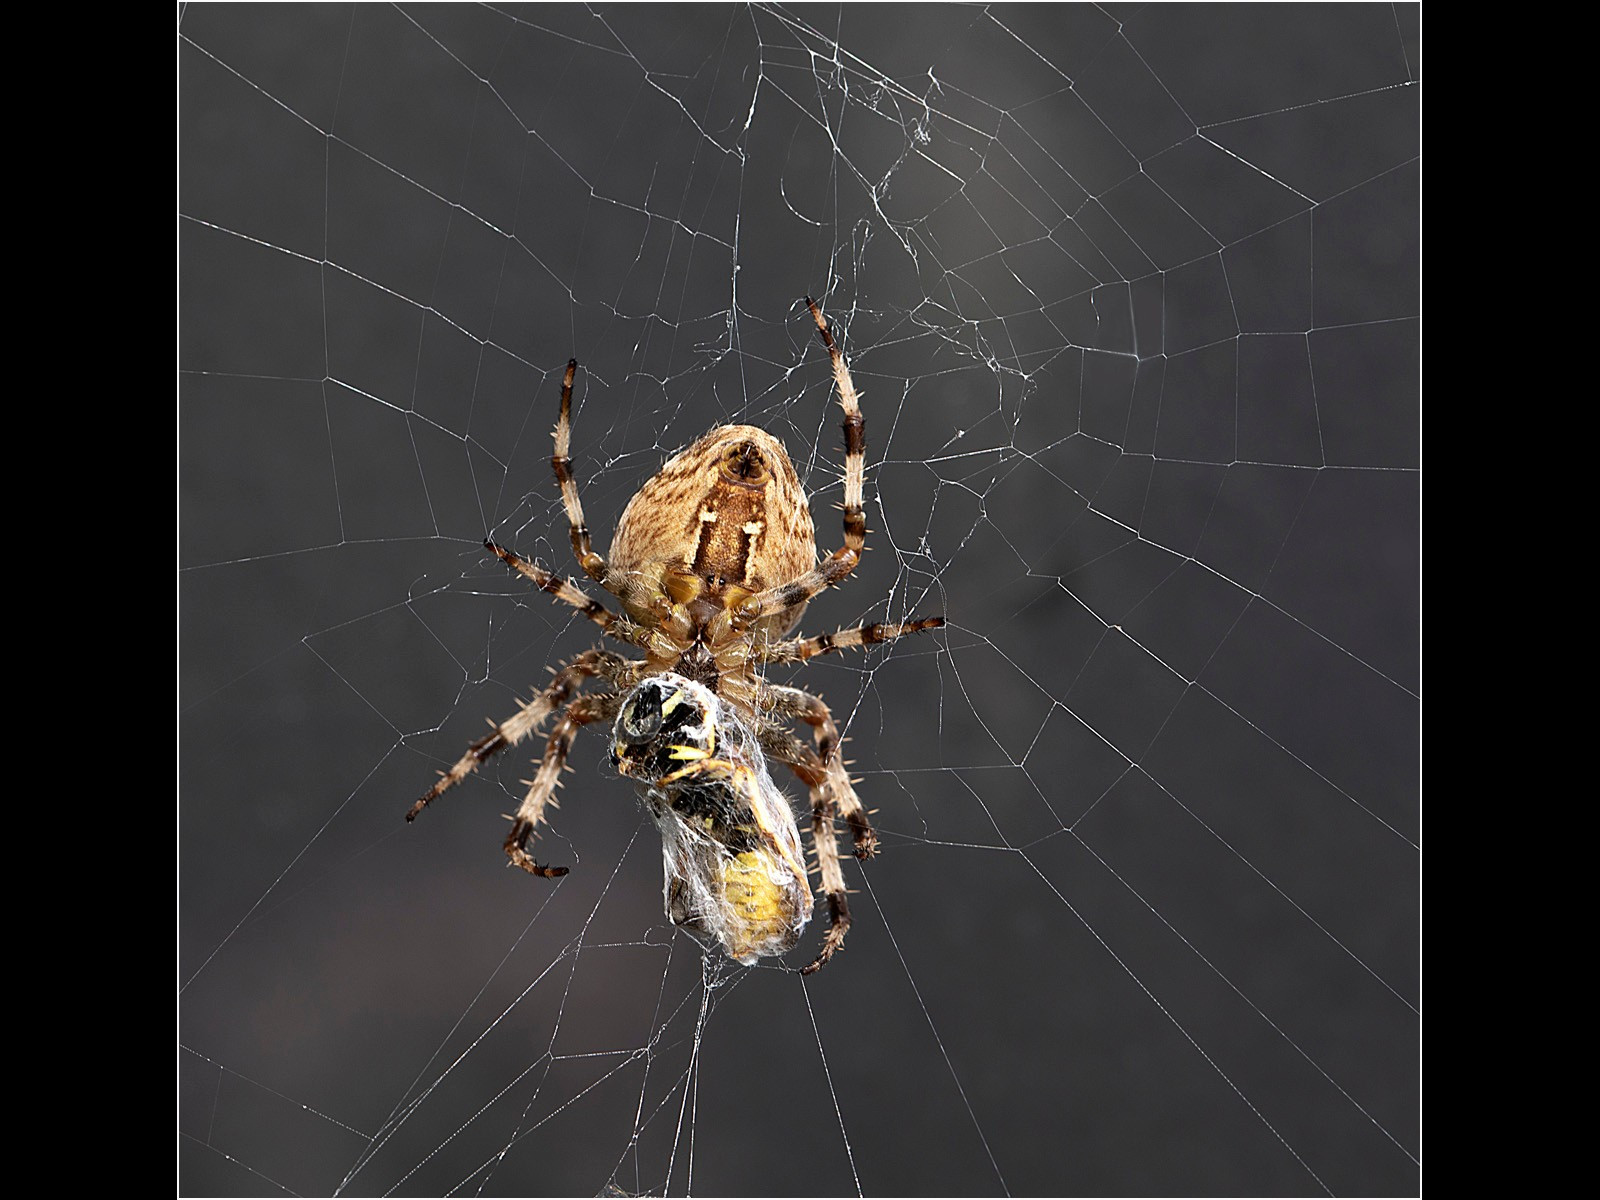 Orb Weaver Spider with Wasp Prey